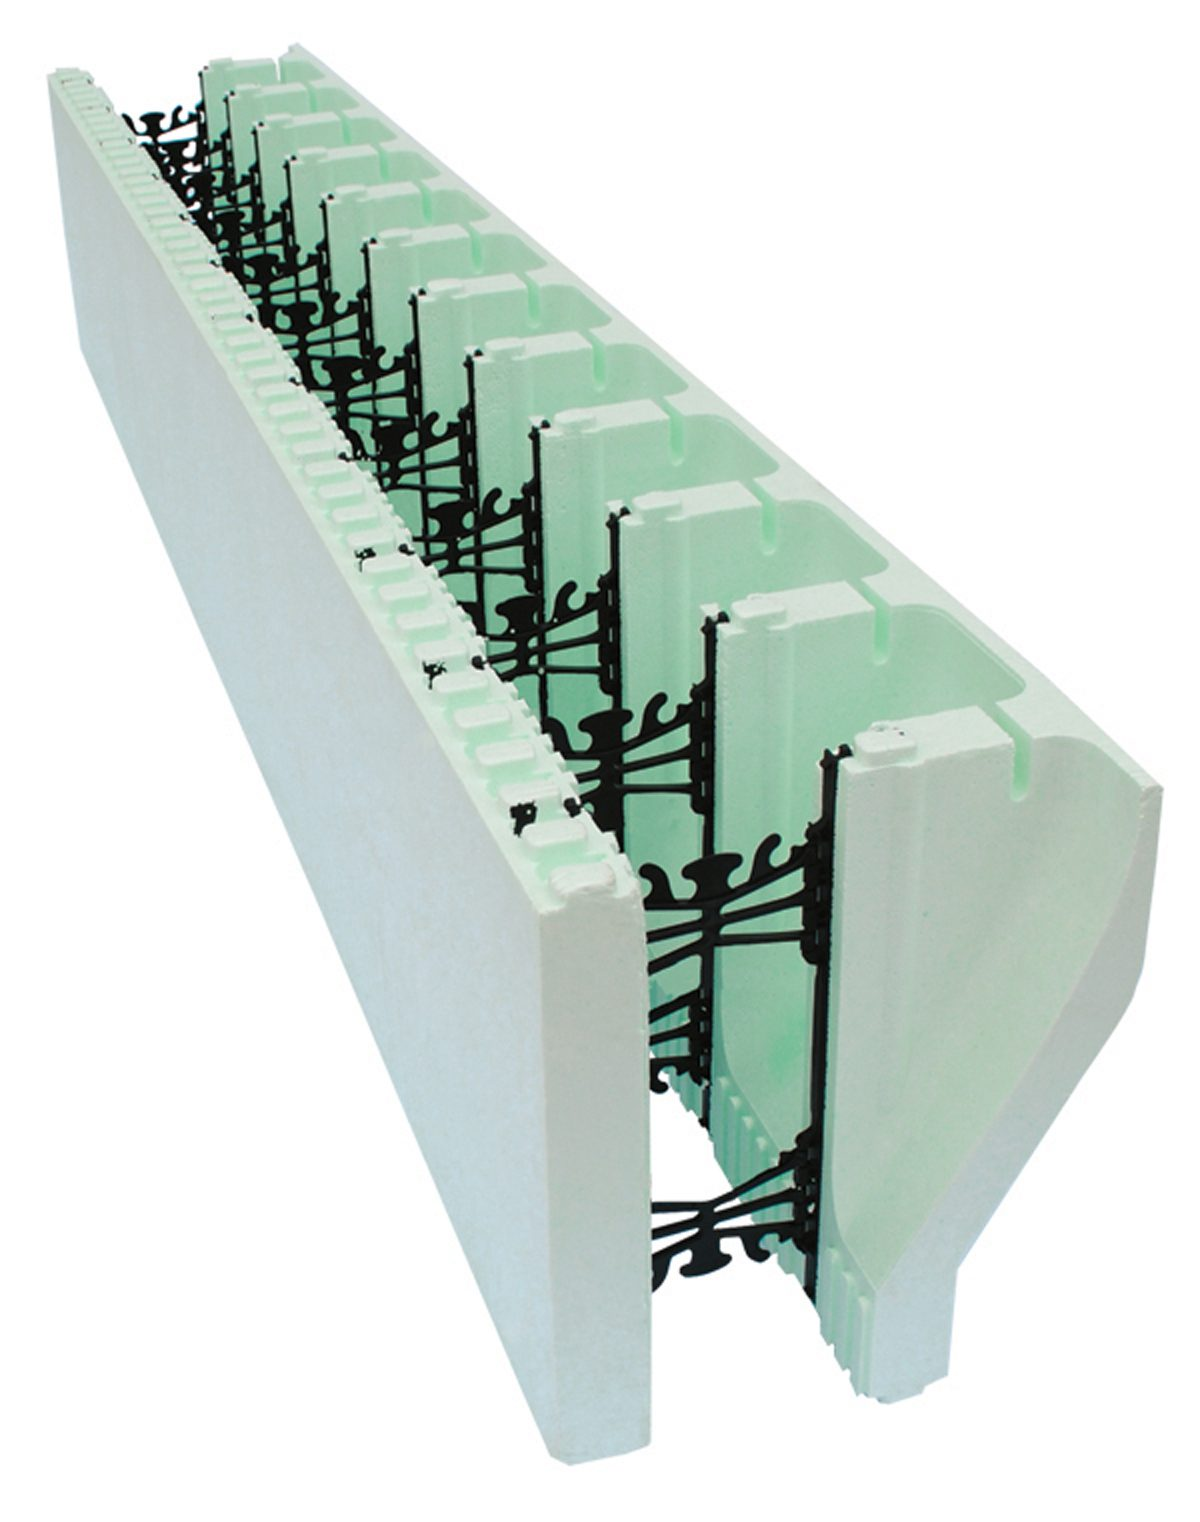 What icf can do for you architecture today for Nudura icf cost